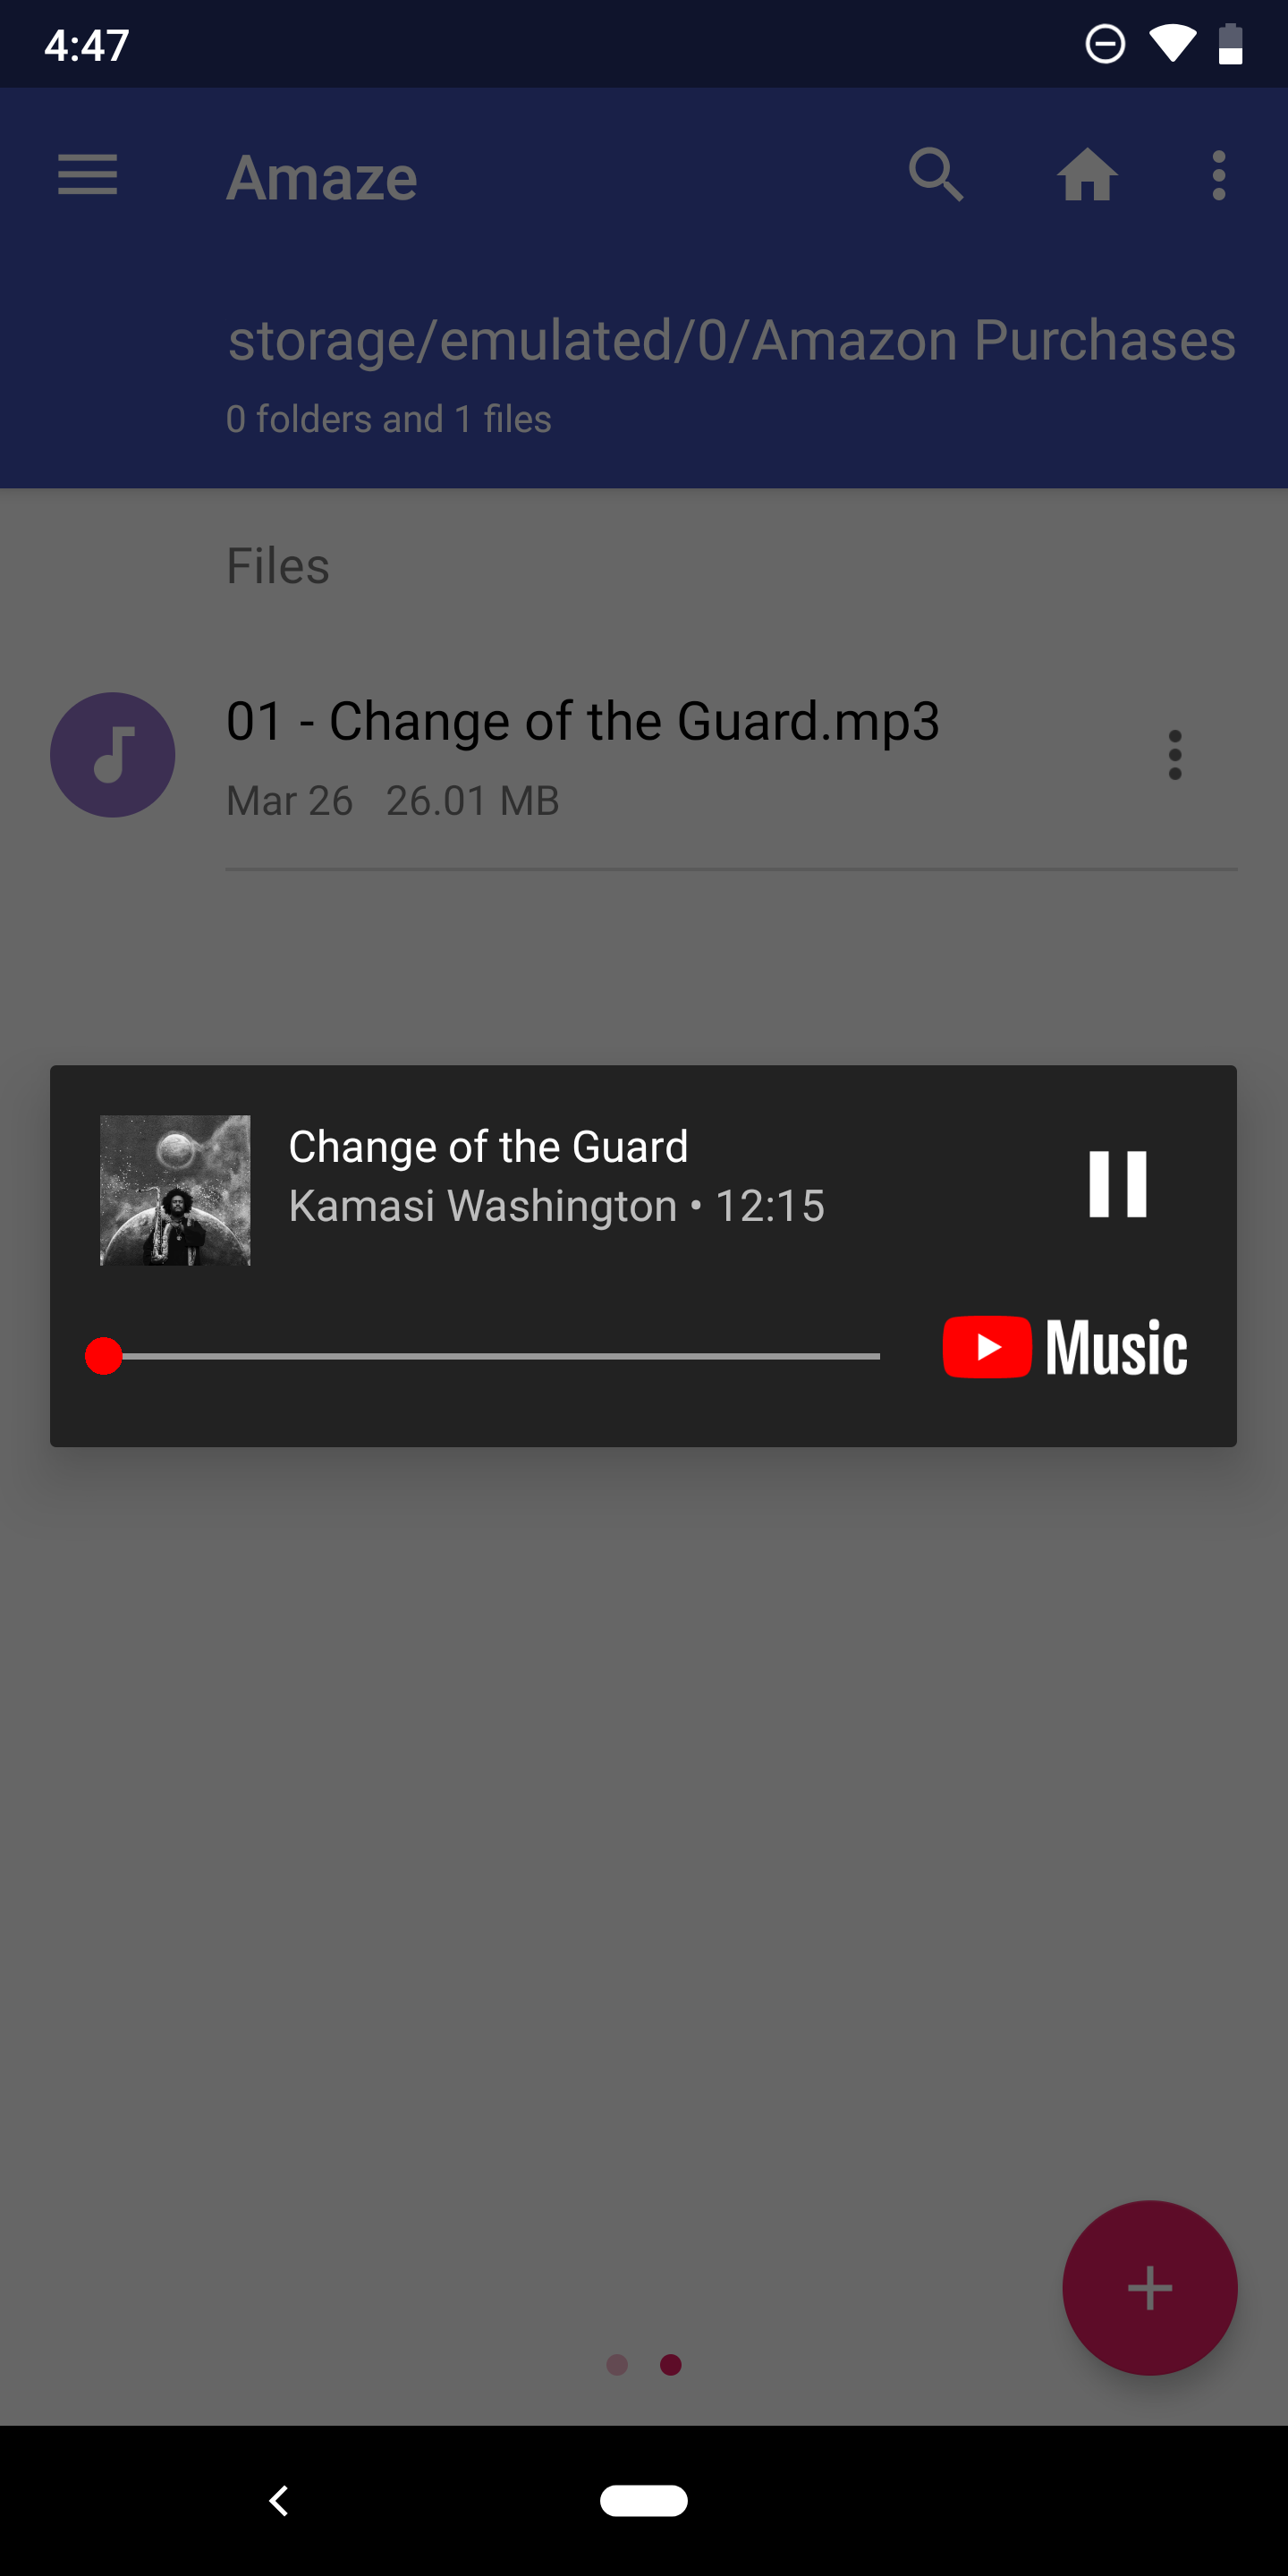 YouTube Music can now act as a media player for files stored